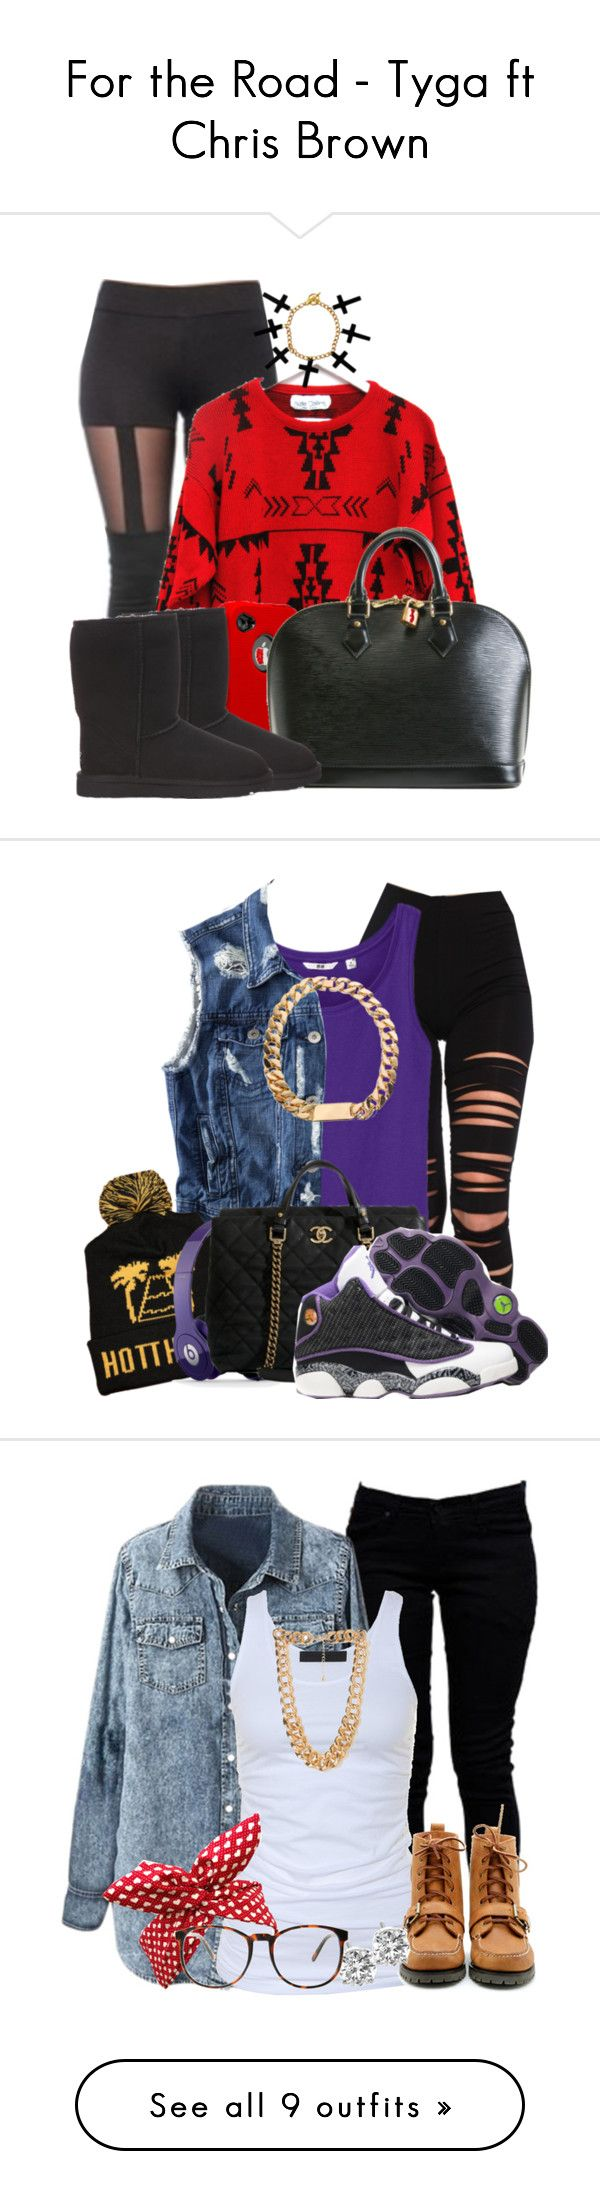 """For the Road - Tyga ft Chris Brown"" by mindlesspolyvore ❤ liked on Polyvore featuring OtterBox, UGG Australia, Akira, Uniqlo, H&M, Beats by Dr. Dre, Chanel, Boohoo, Tusnelda Bloch and Forever 21"